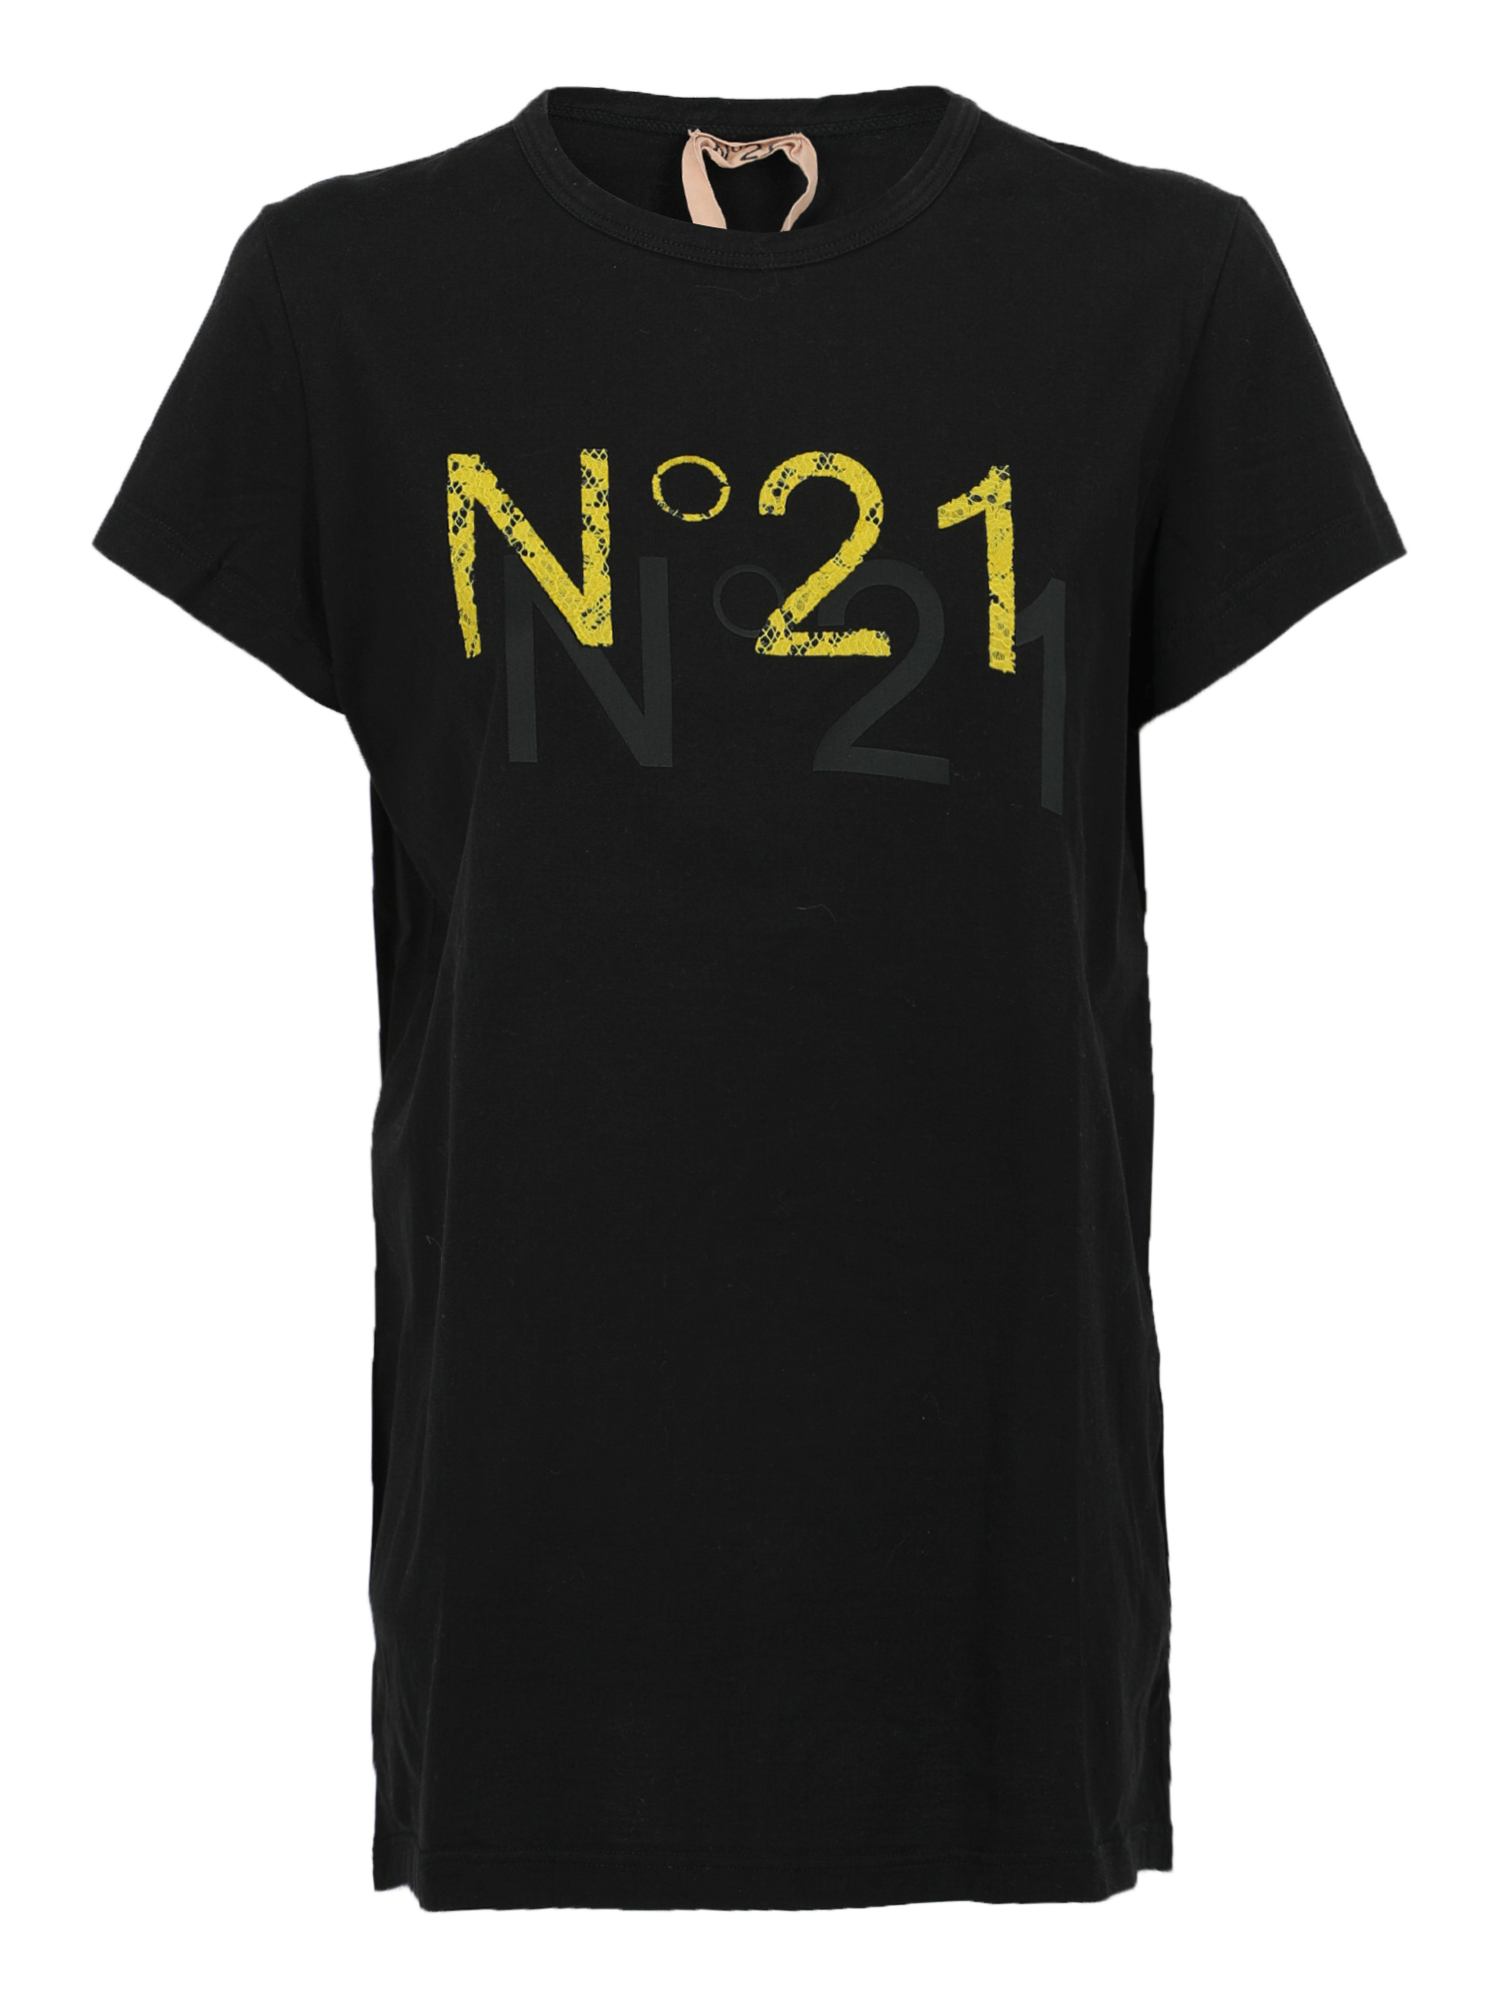 Pre-owned N°21 Clothing In Black, Yellow